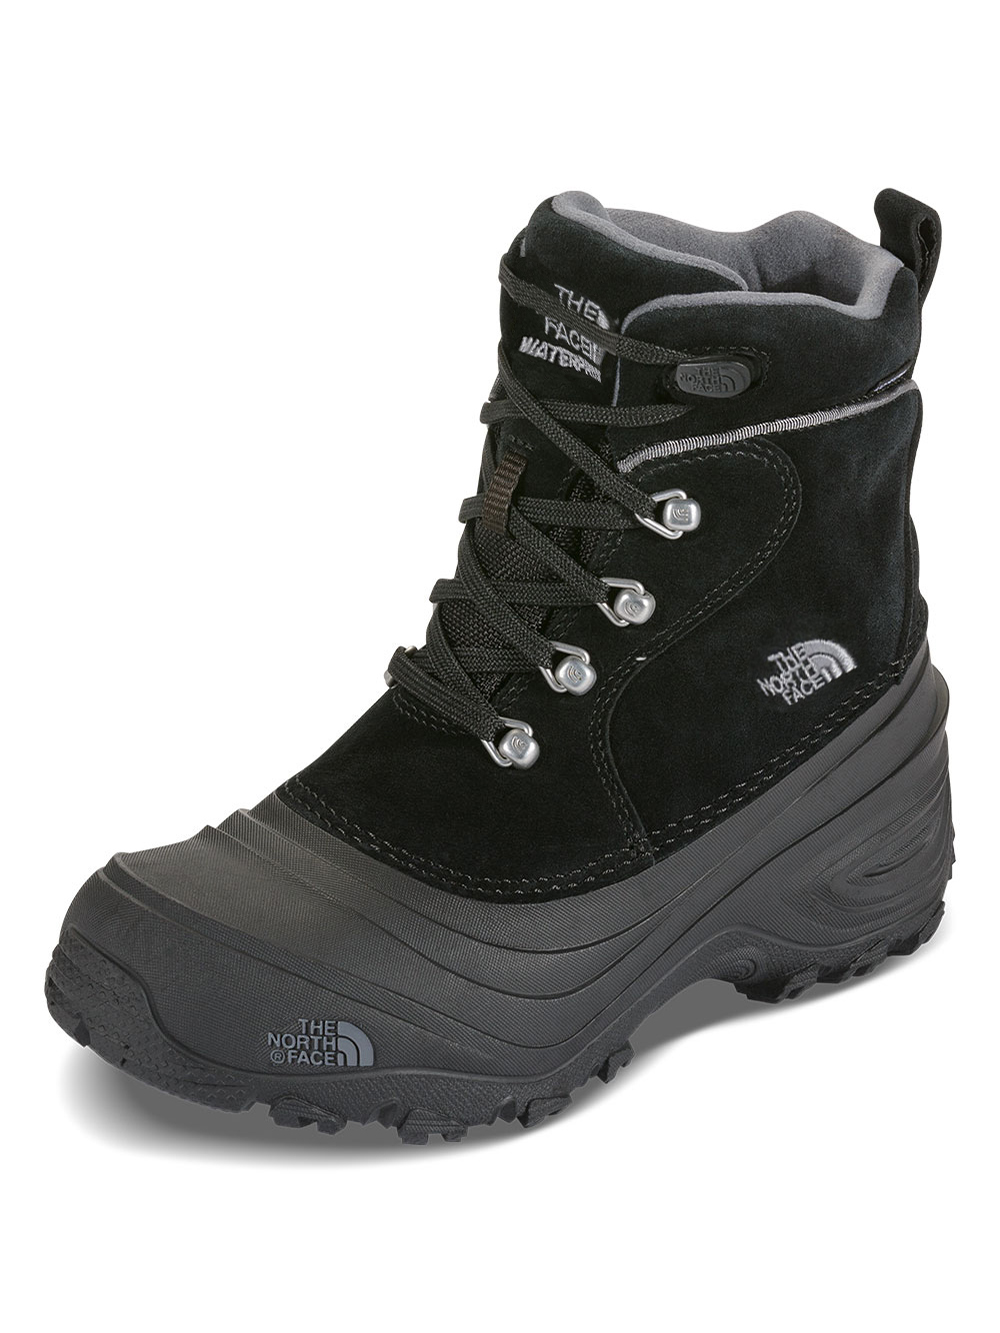 The North Face Boys' Chilkat Lace II Boots (Youth Sizes 13 - 7) - black/zinc gray, 4 youth